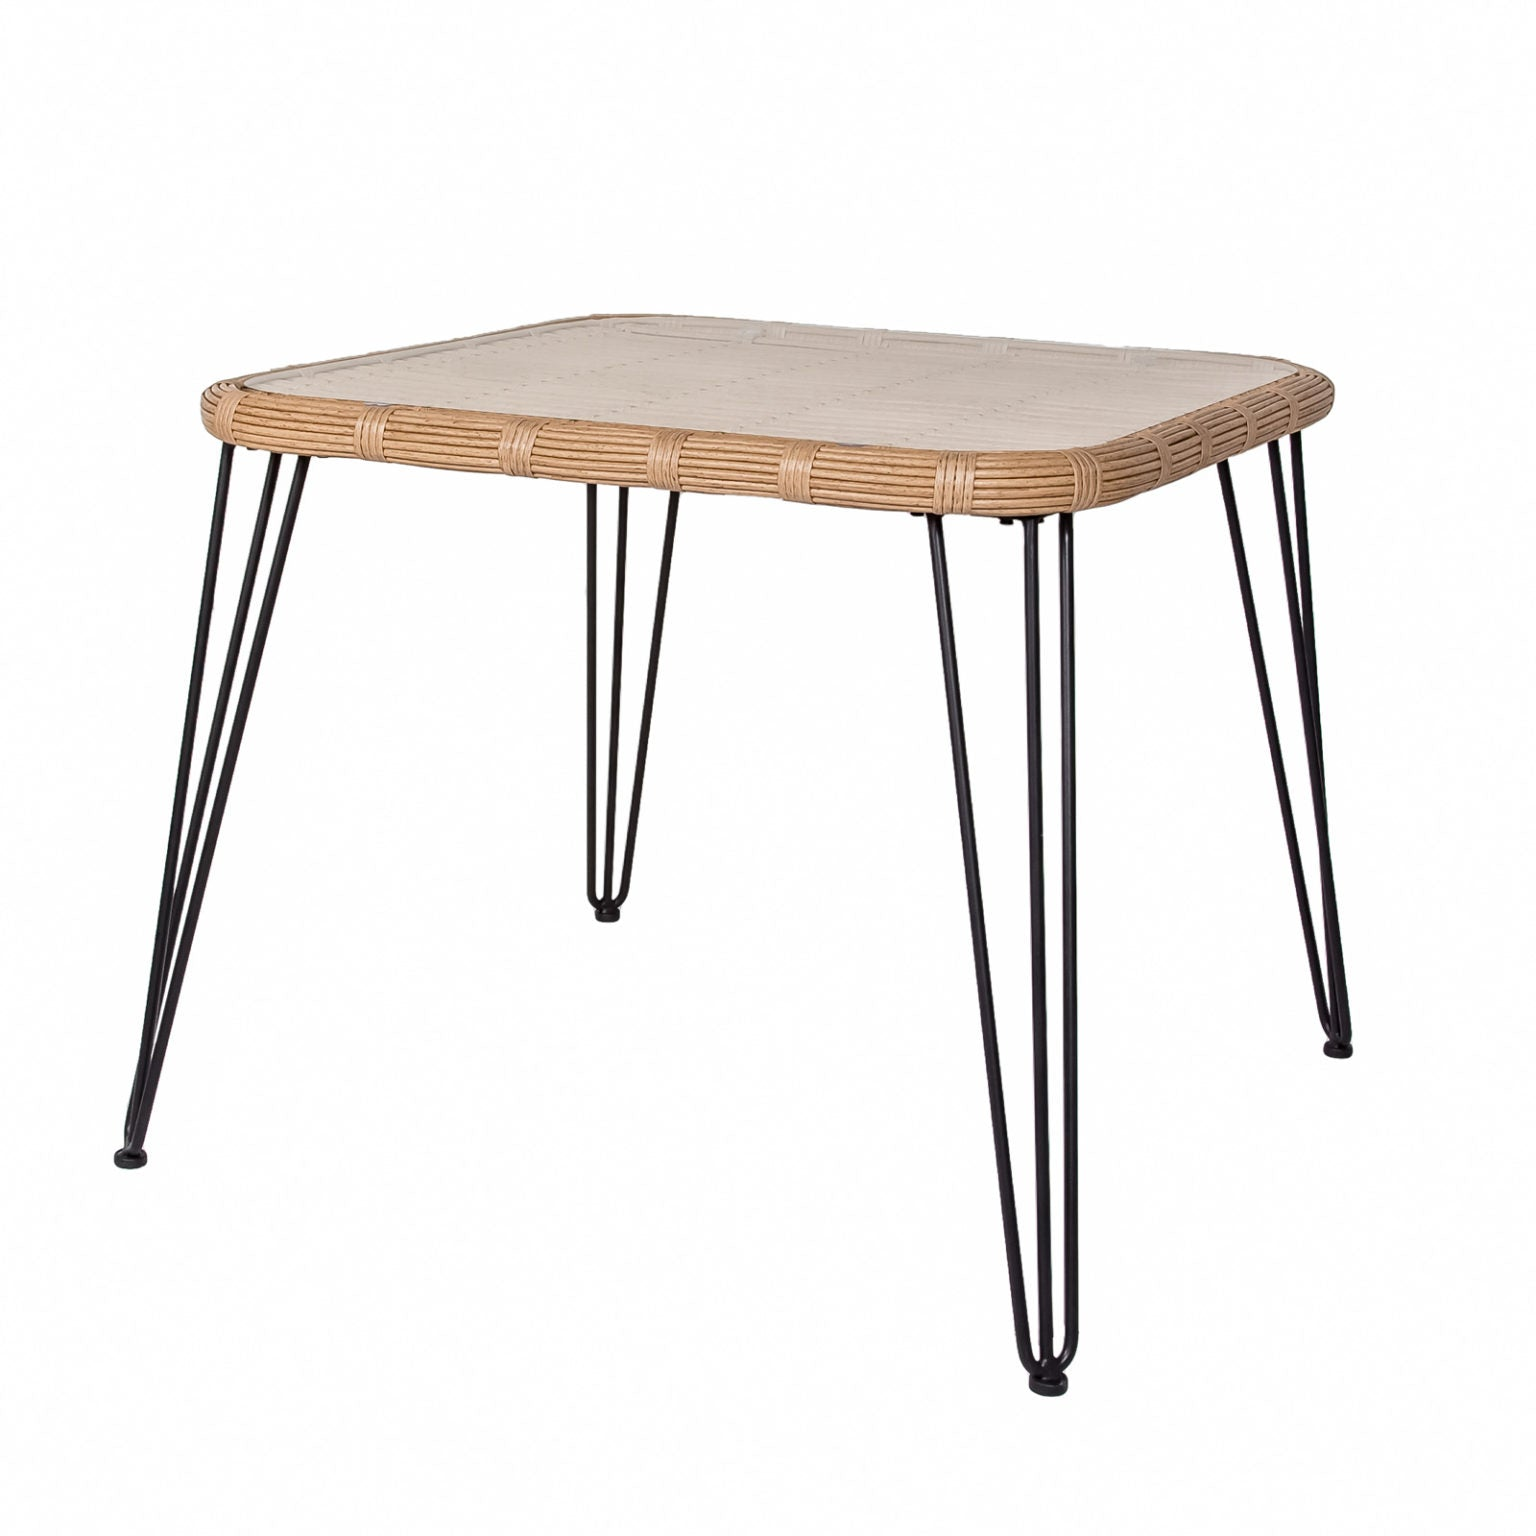 Callie Dining Table - Rug & Weave